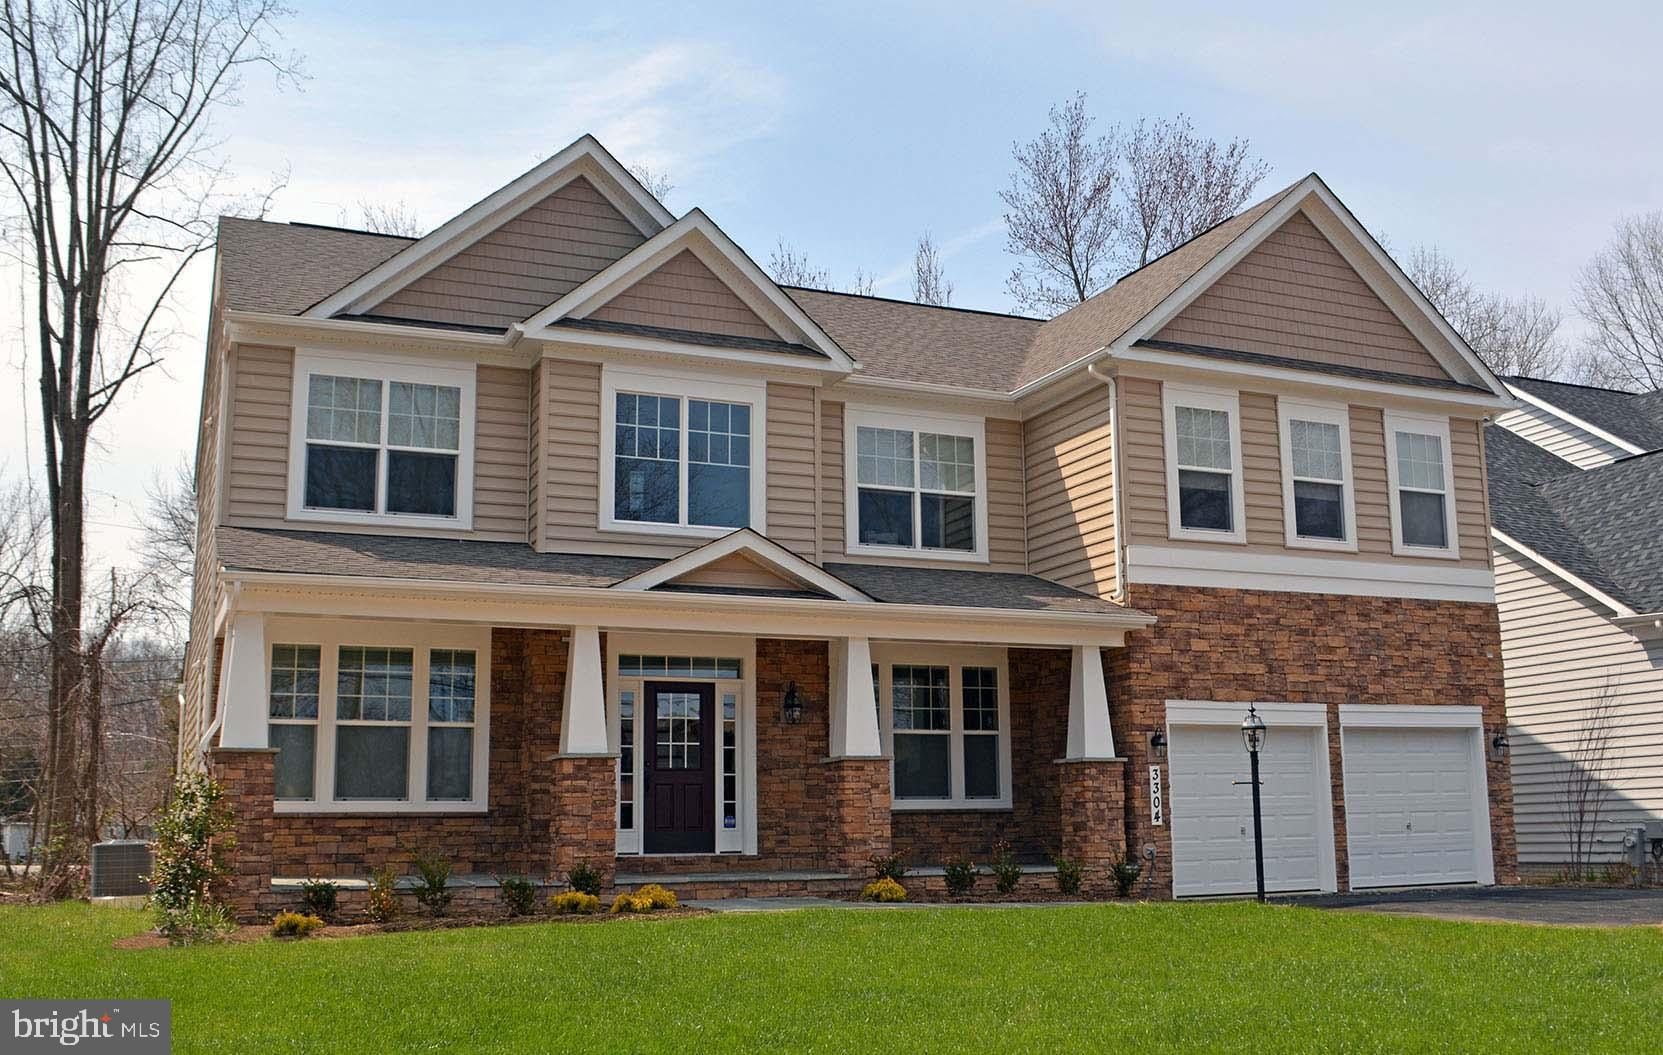 2600 COTTER ROAD, MILLERS, MD 21102